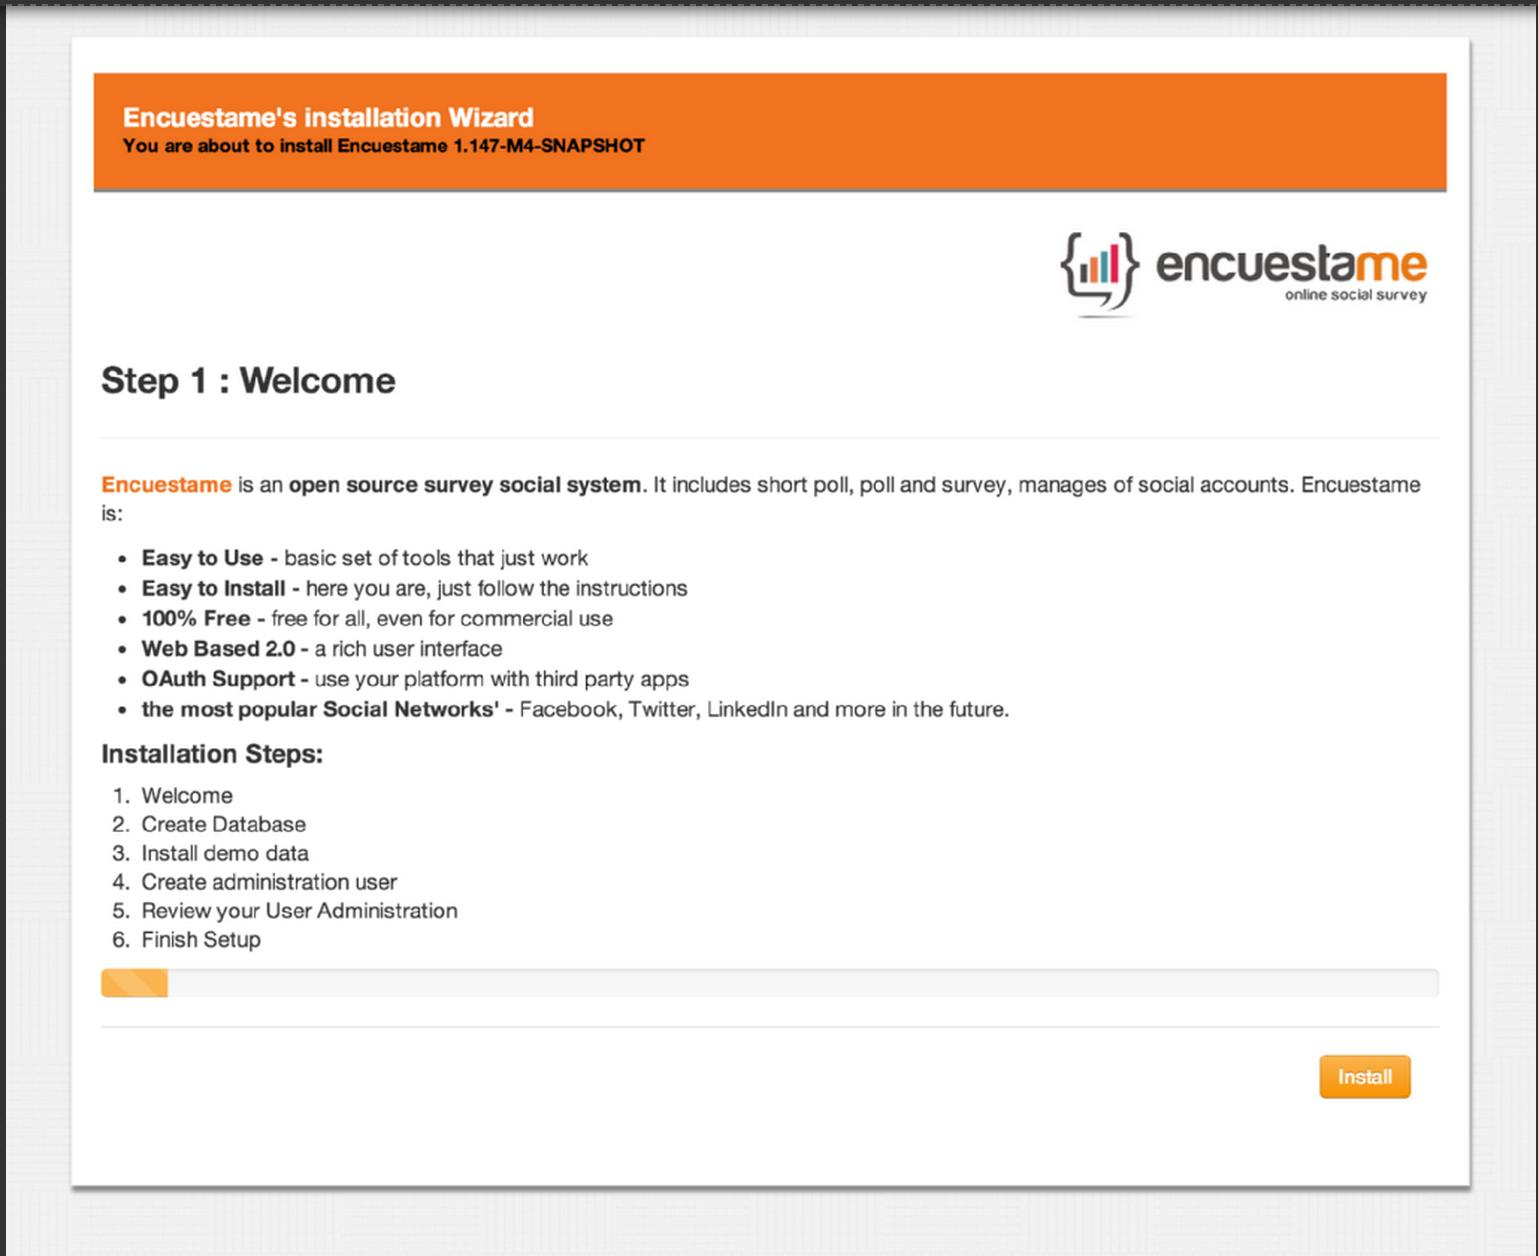 Encuestame - Encuestame comes with an easy to use installation wizard to get it up and running